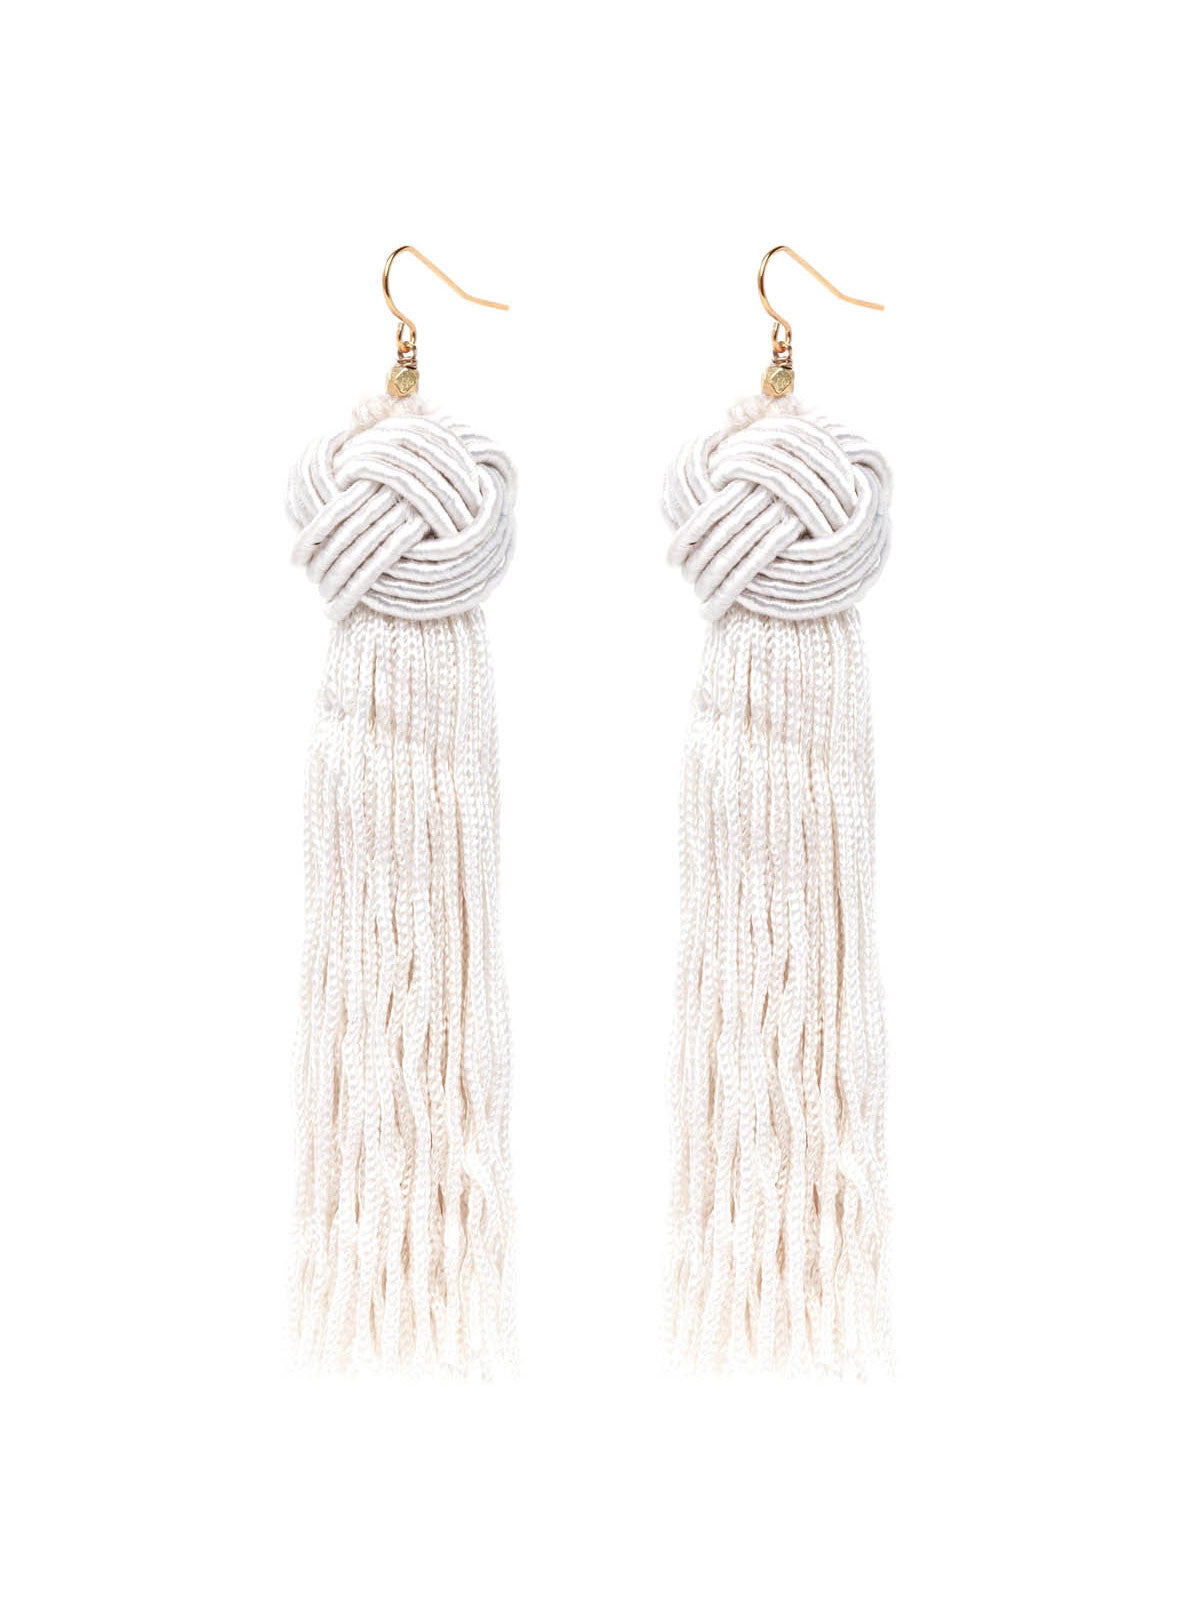 valerie file kitty tassle earrings s pink tassel original creations statement products collections sweet